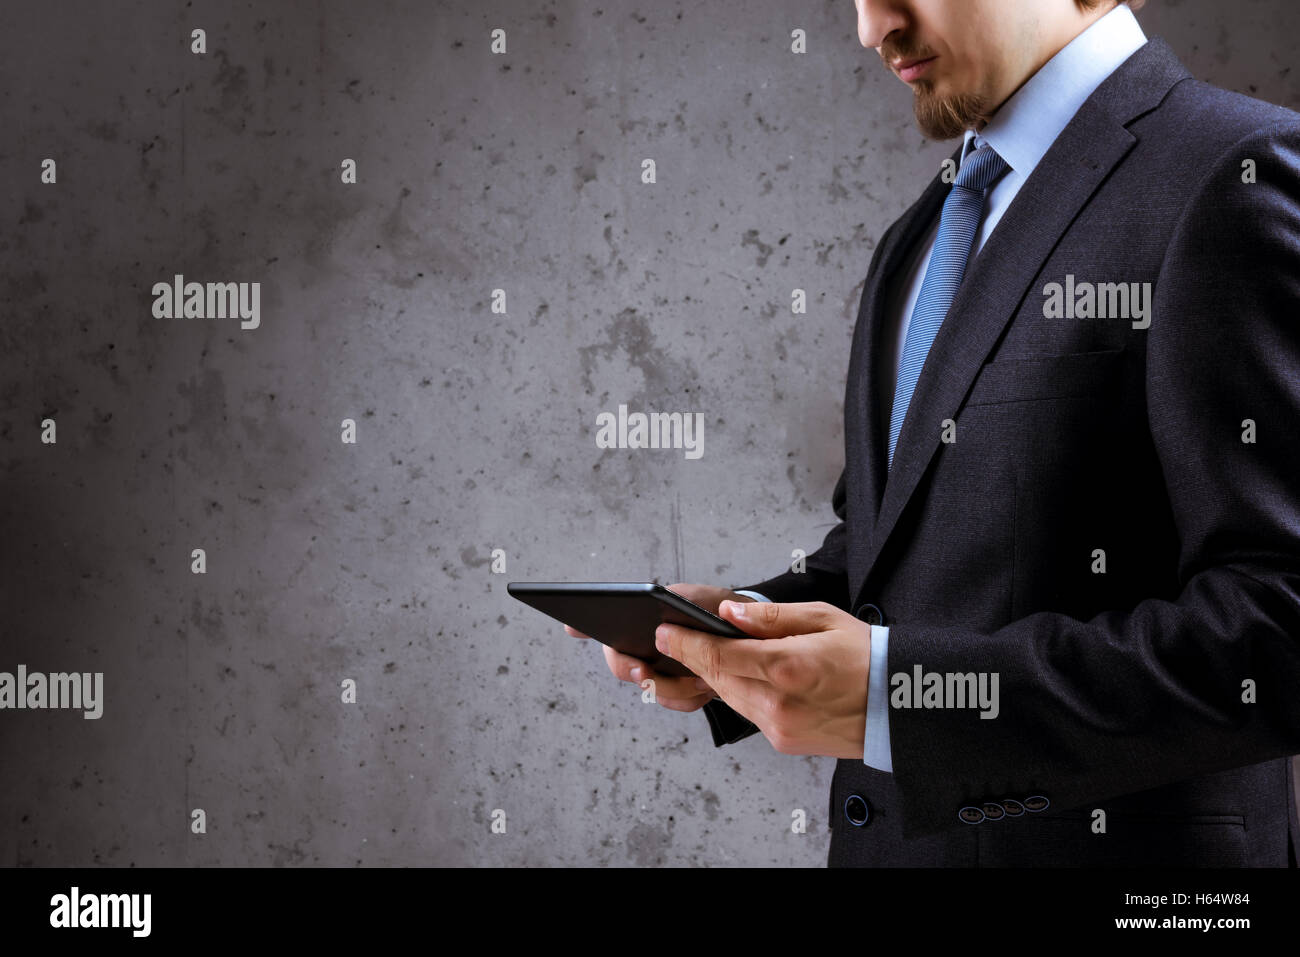 Business man tablet pc concept - Stock Image